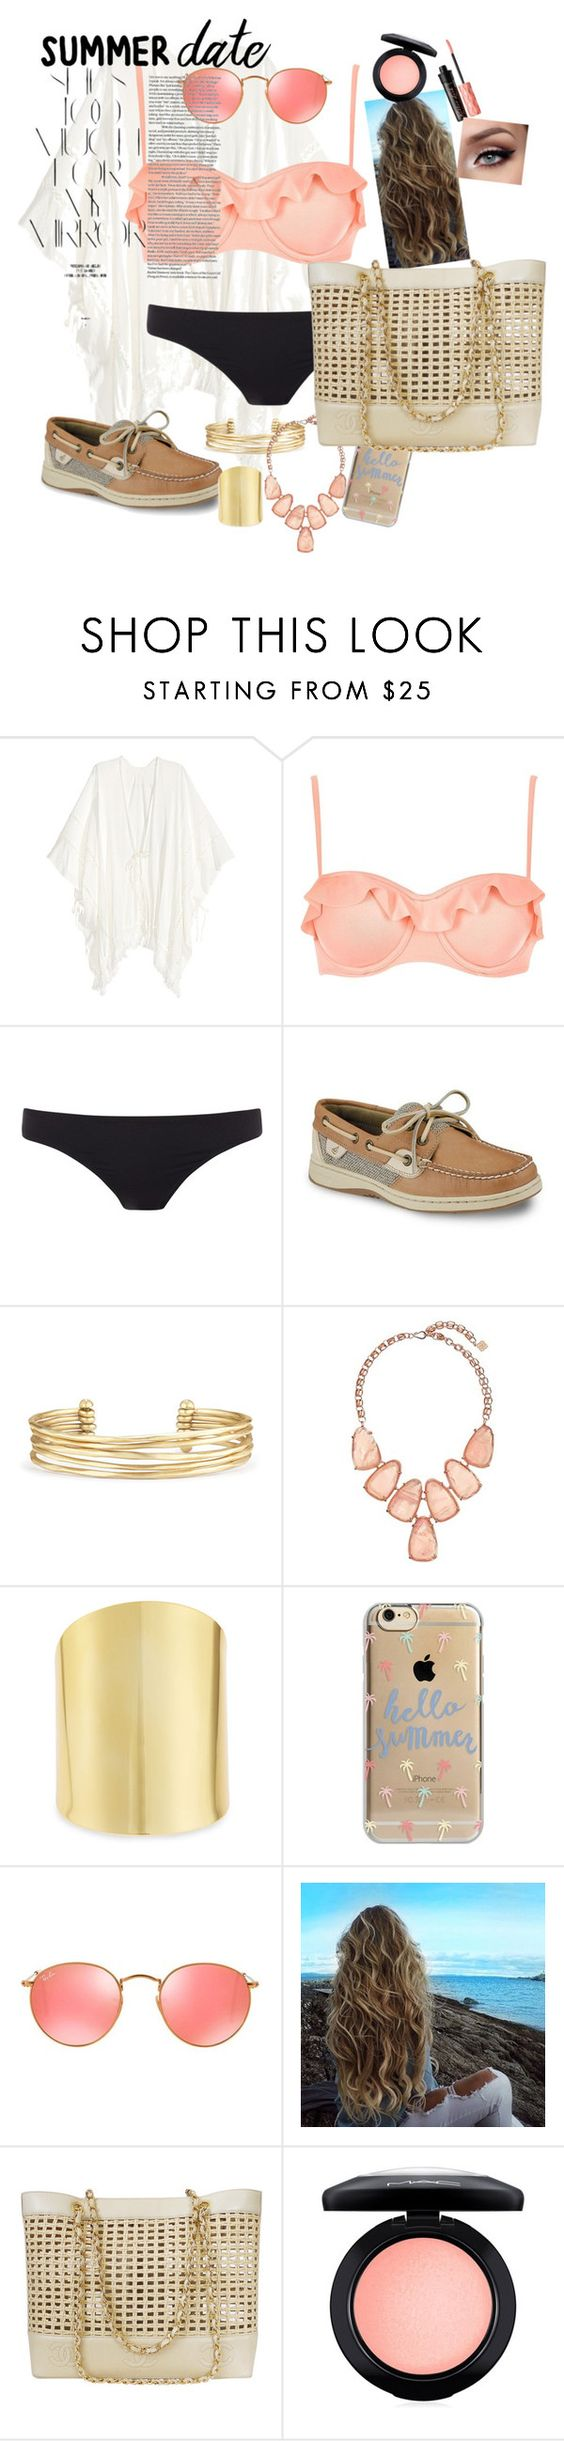 """summer date - beach day"" by katepitzel on Polyvore featuring River Island, Paul Smith, Sperry, Stella & Dot, Kendra Scott, Lydell NYC, Agent 18, Ray-Ban, Chanel and MAC Cosmetics"